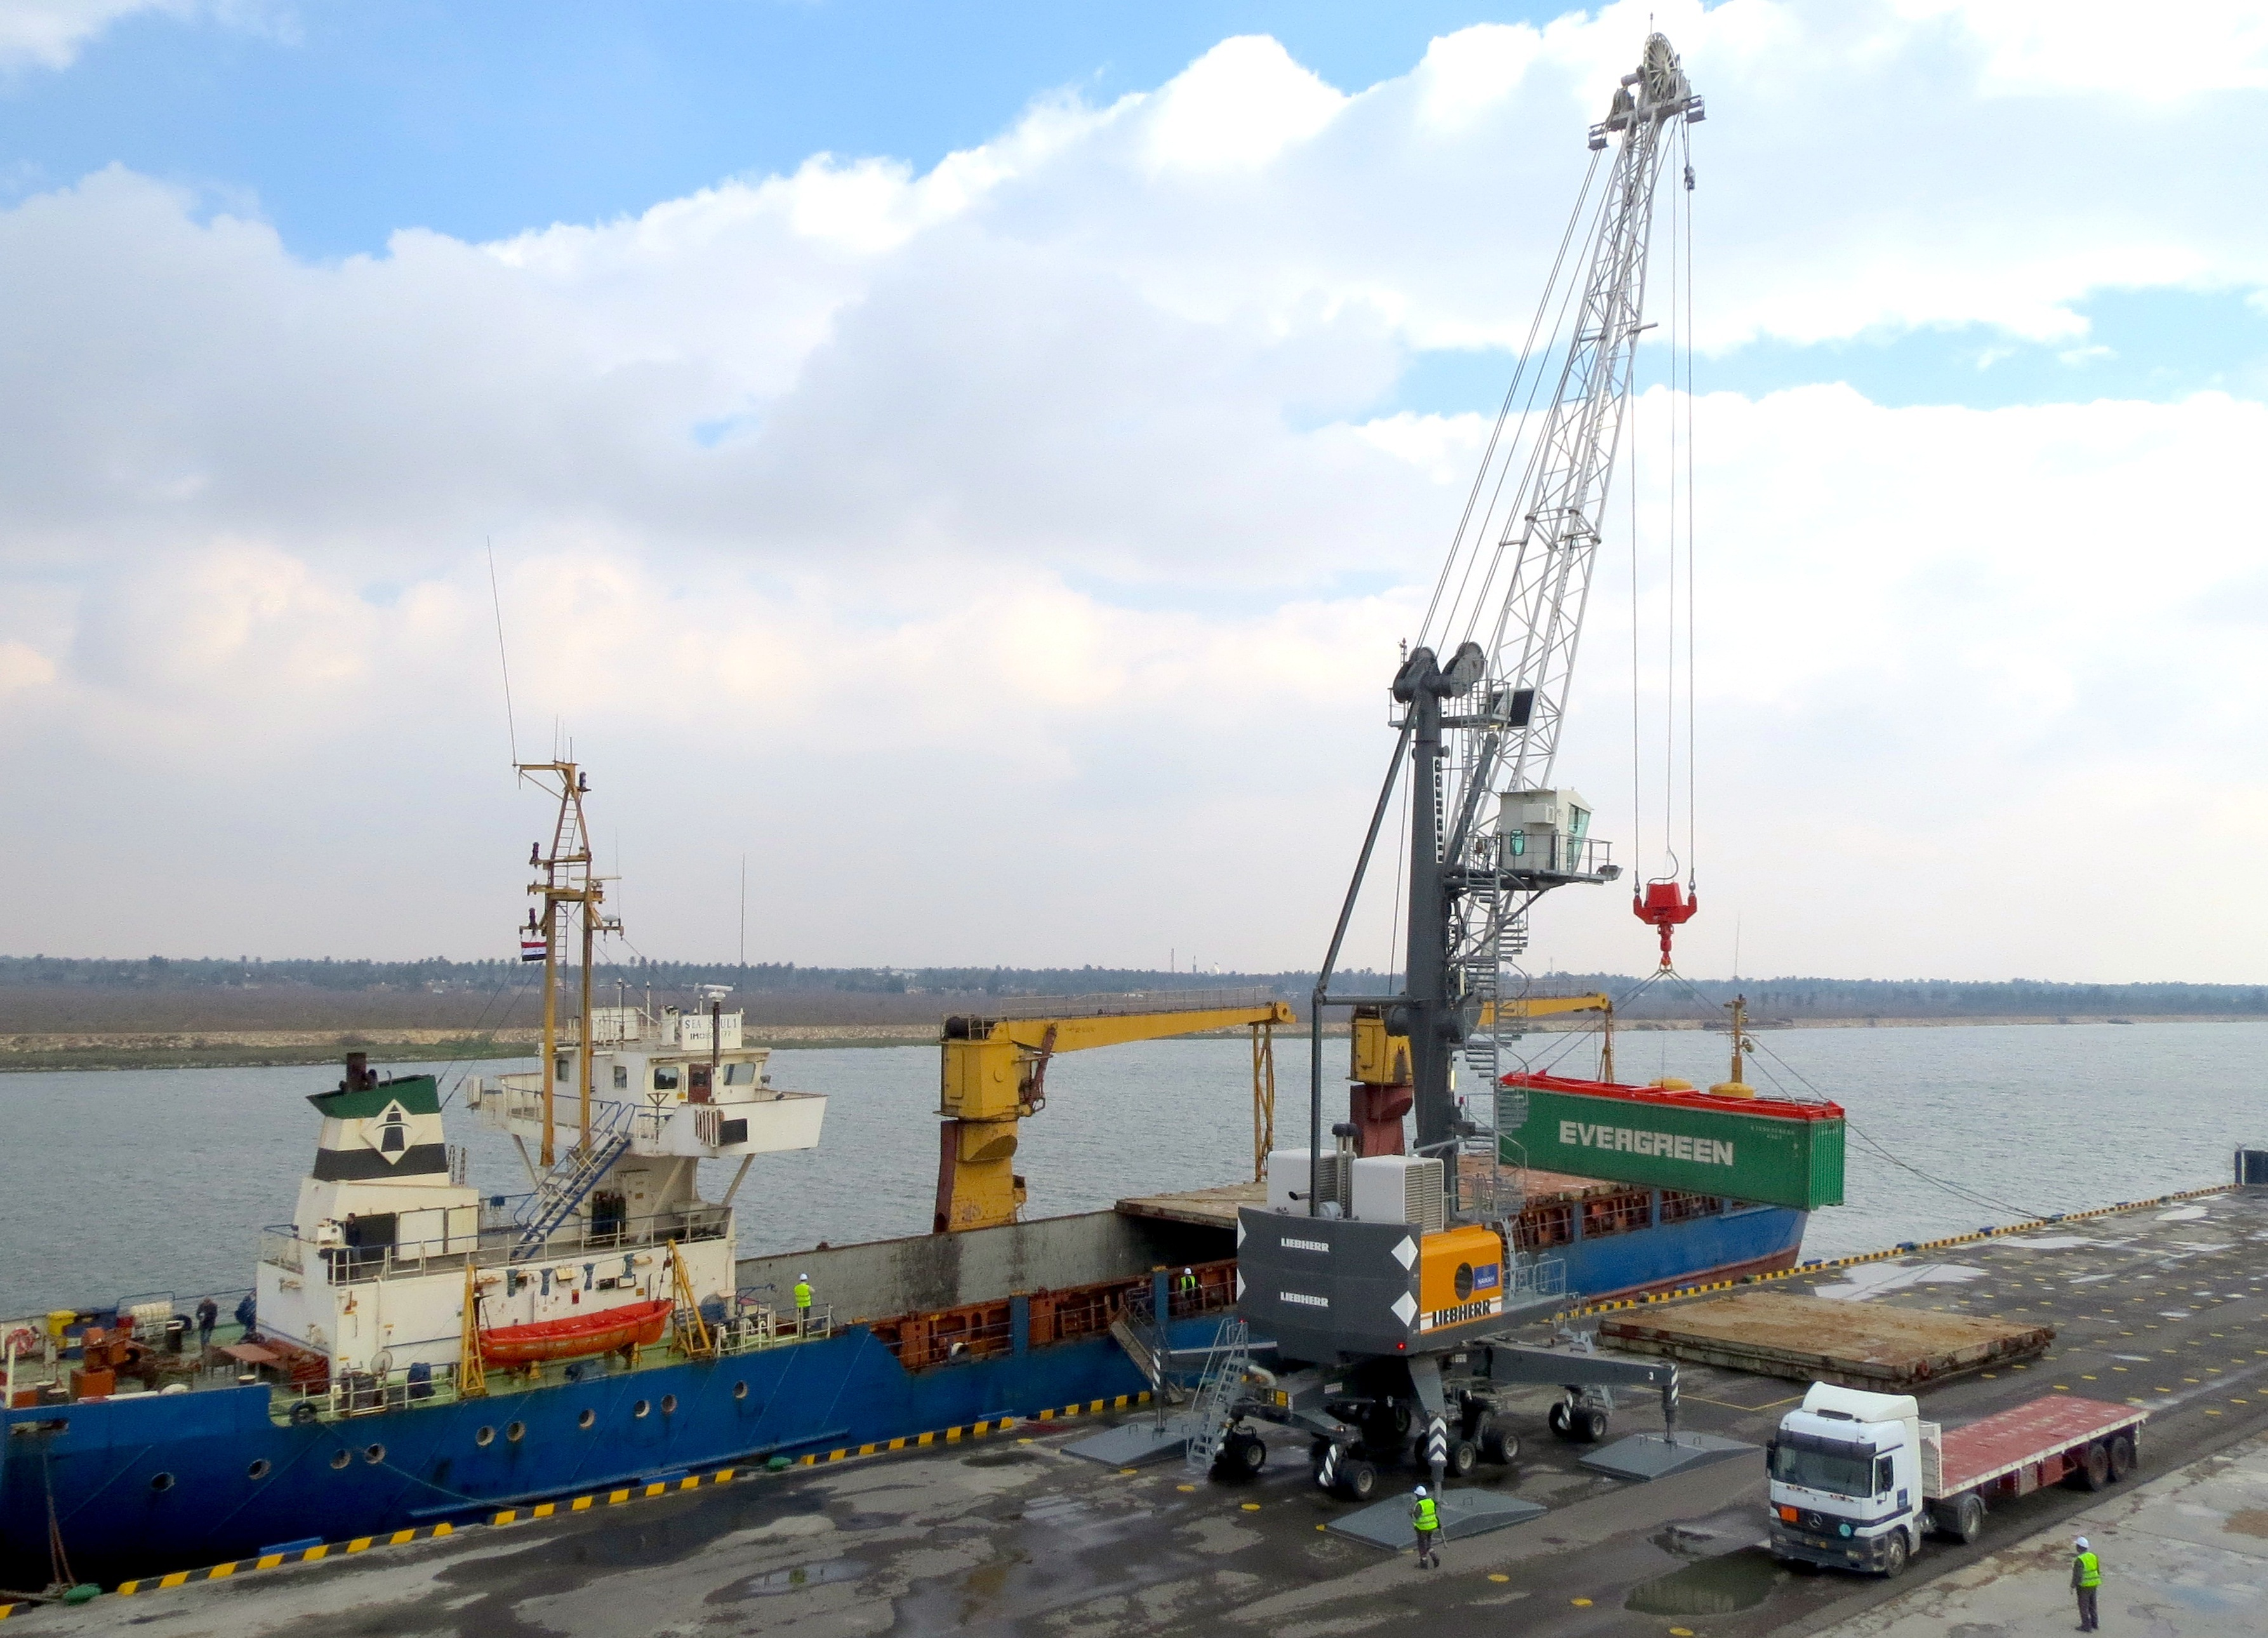 The first containerized cargo ever to be brought up Iraq's Shatt Al Arab waterway is offloaded from the Sea Soul onto NAWAH Port Management's container laydown yard at Al Maqal Port using state-of-the-art mobile harbor crane and equipment. (Photo: Business Wire)